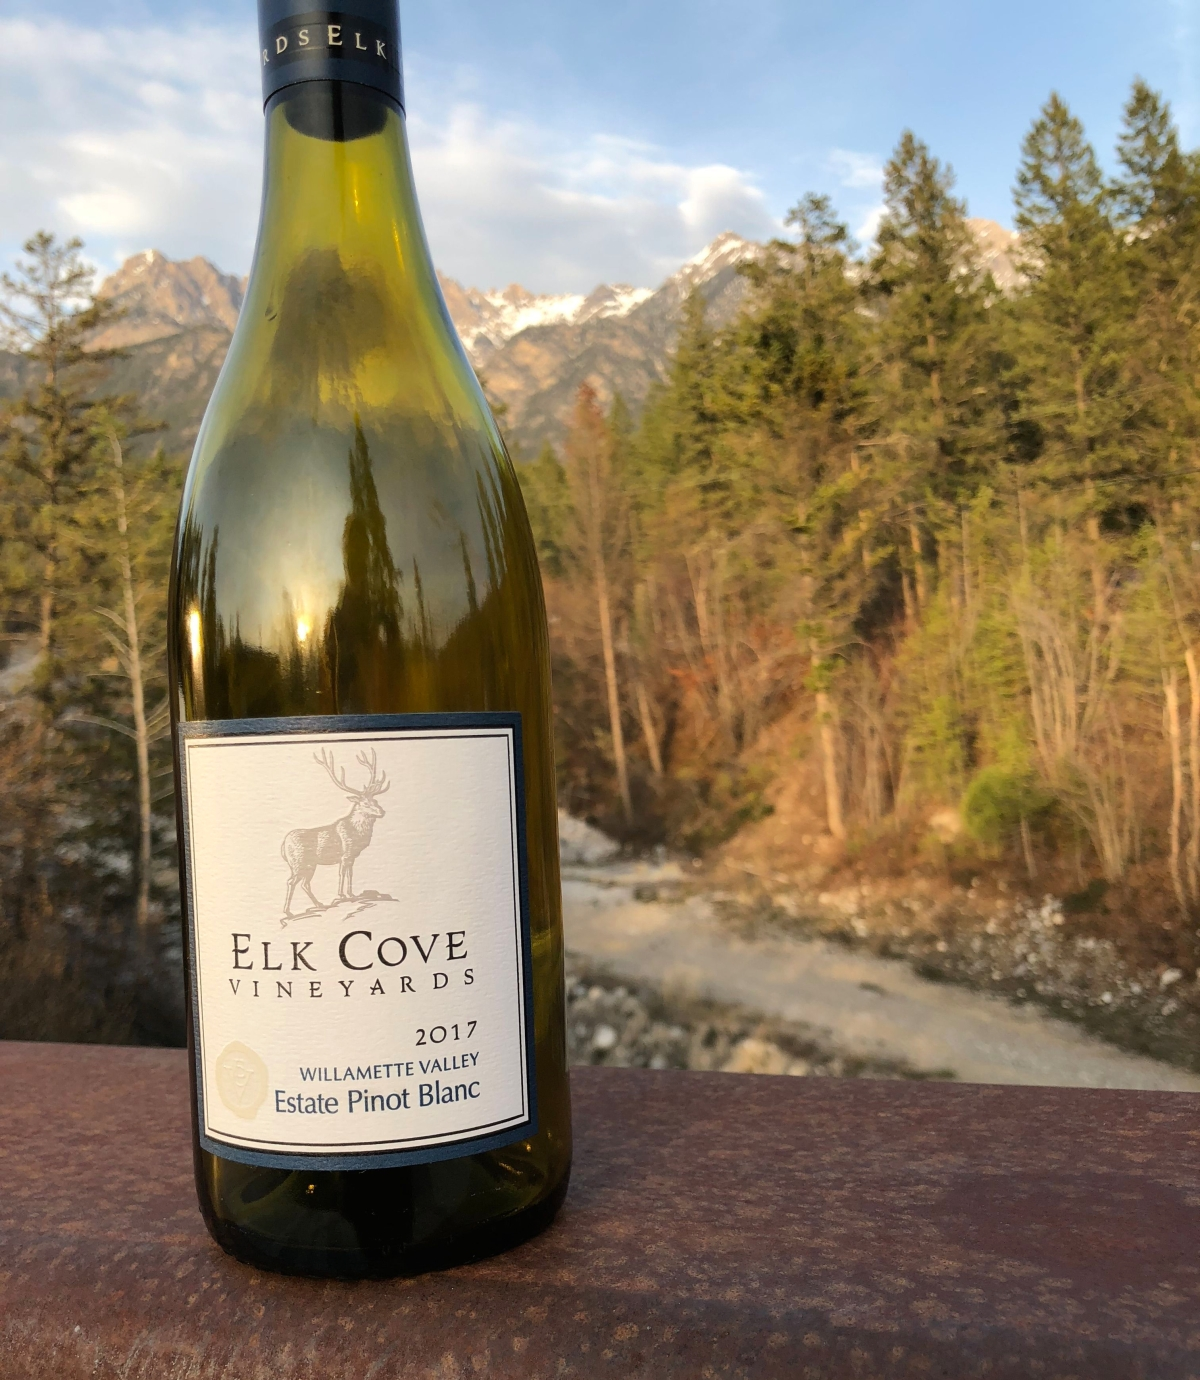 Elk Cove Vineyards pinot blanc